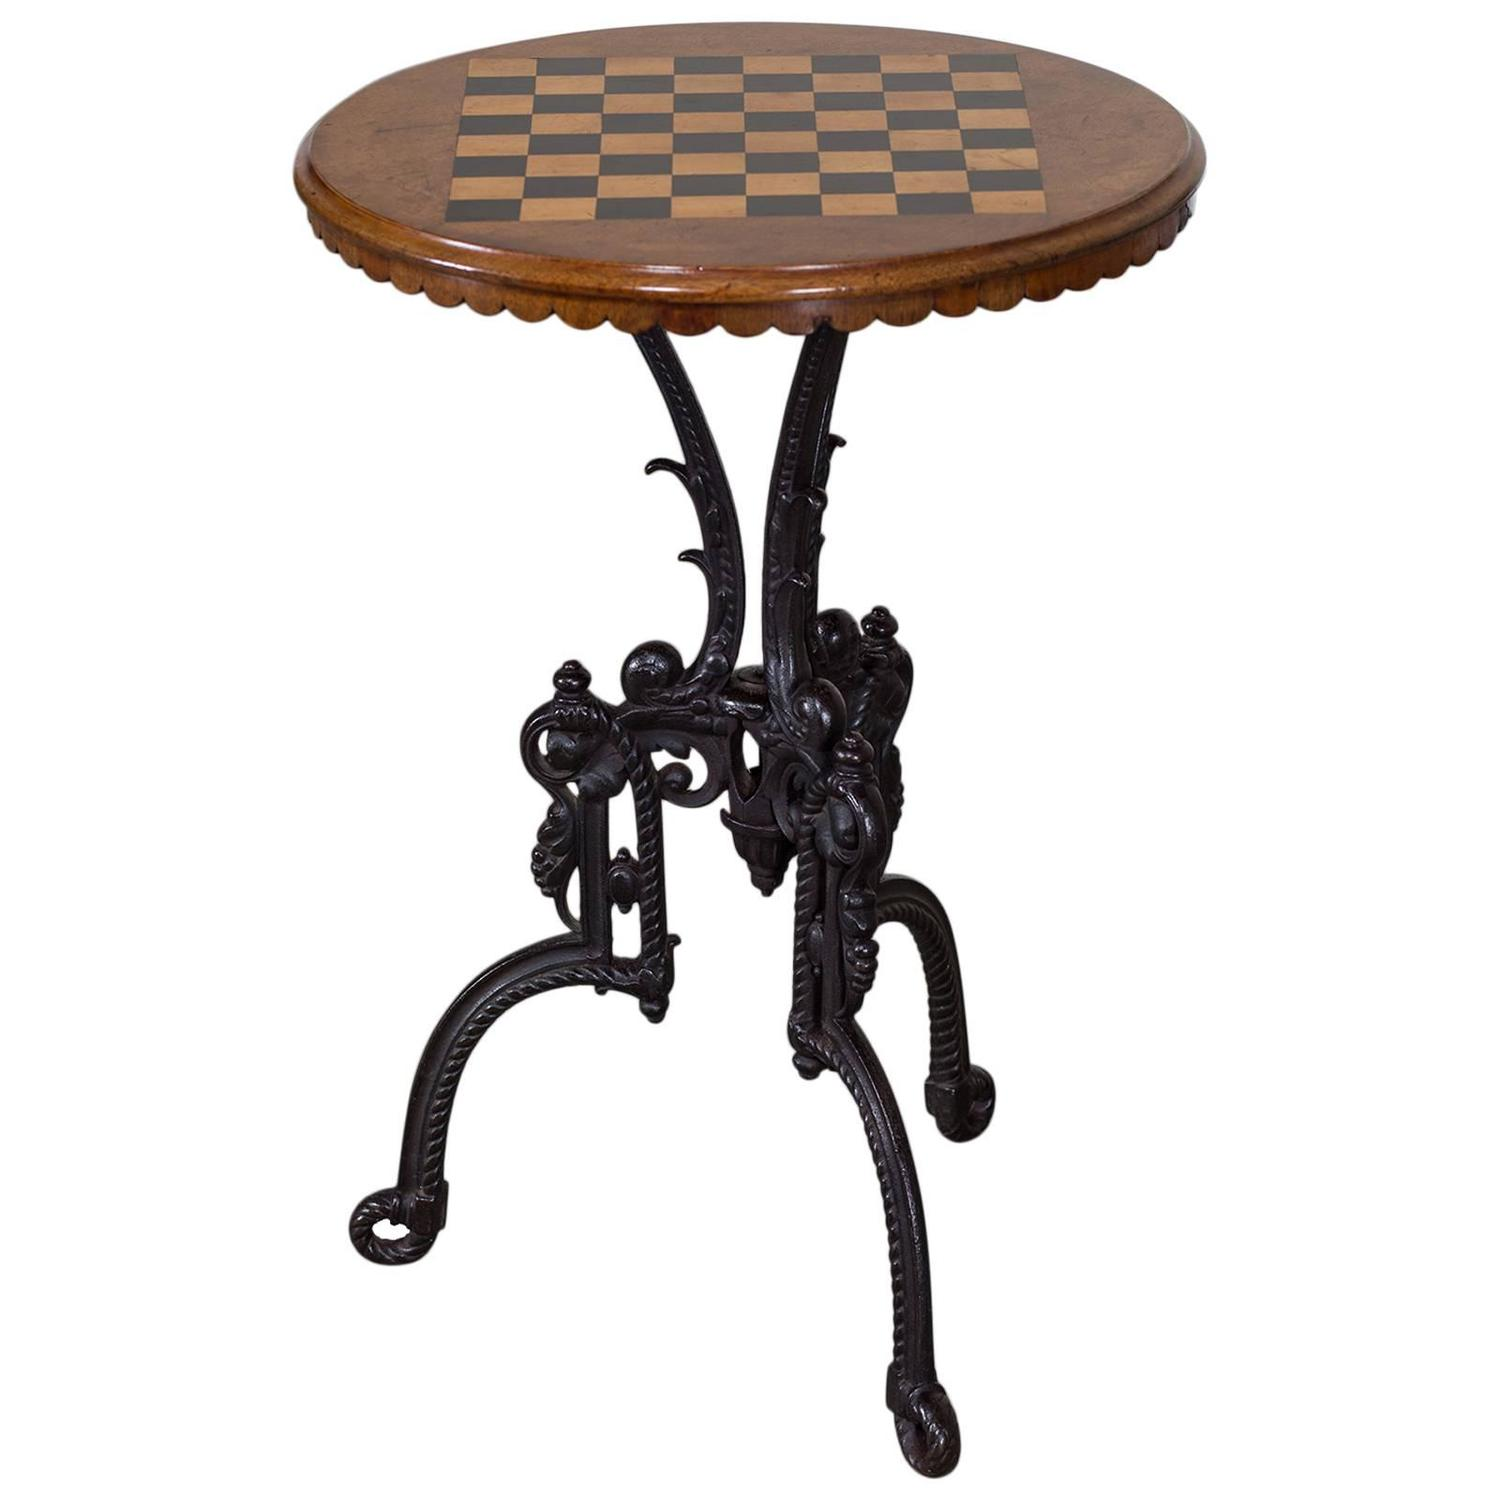 Antique French Chess Board Top Iron Table Circa 1880 At